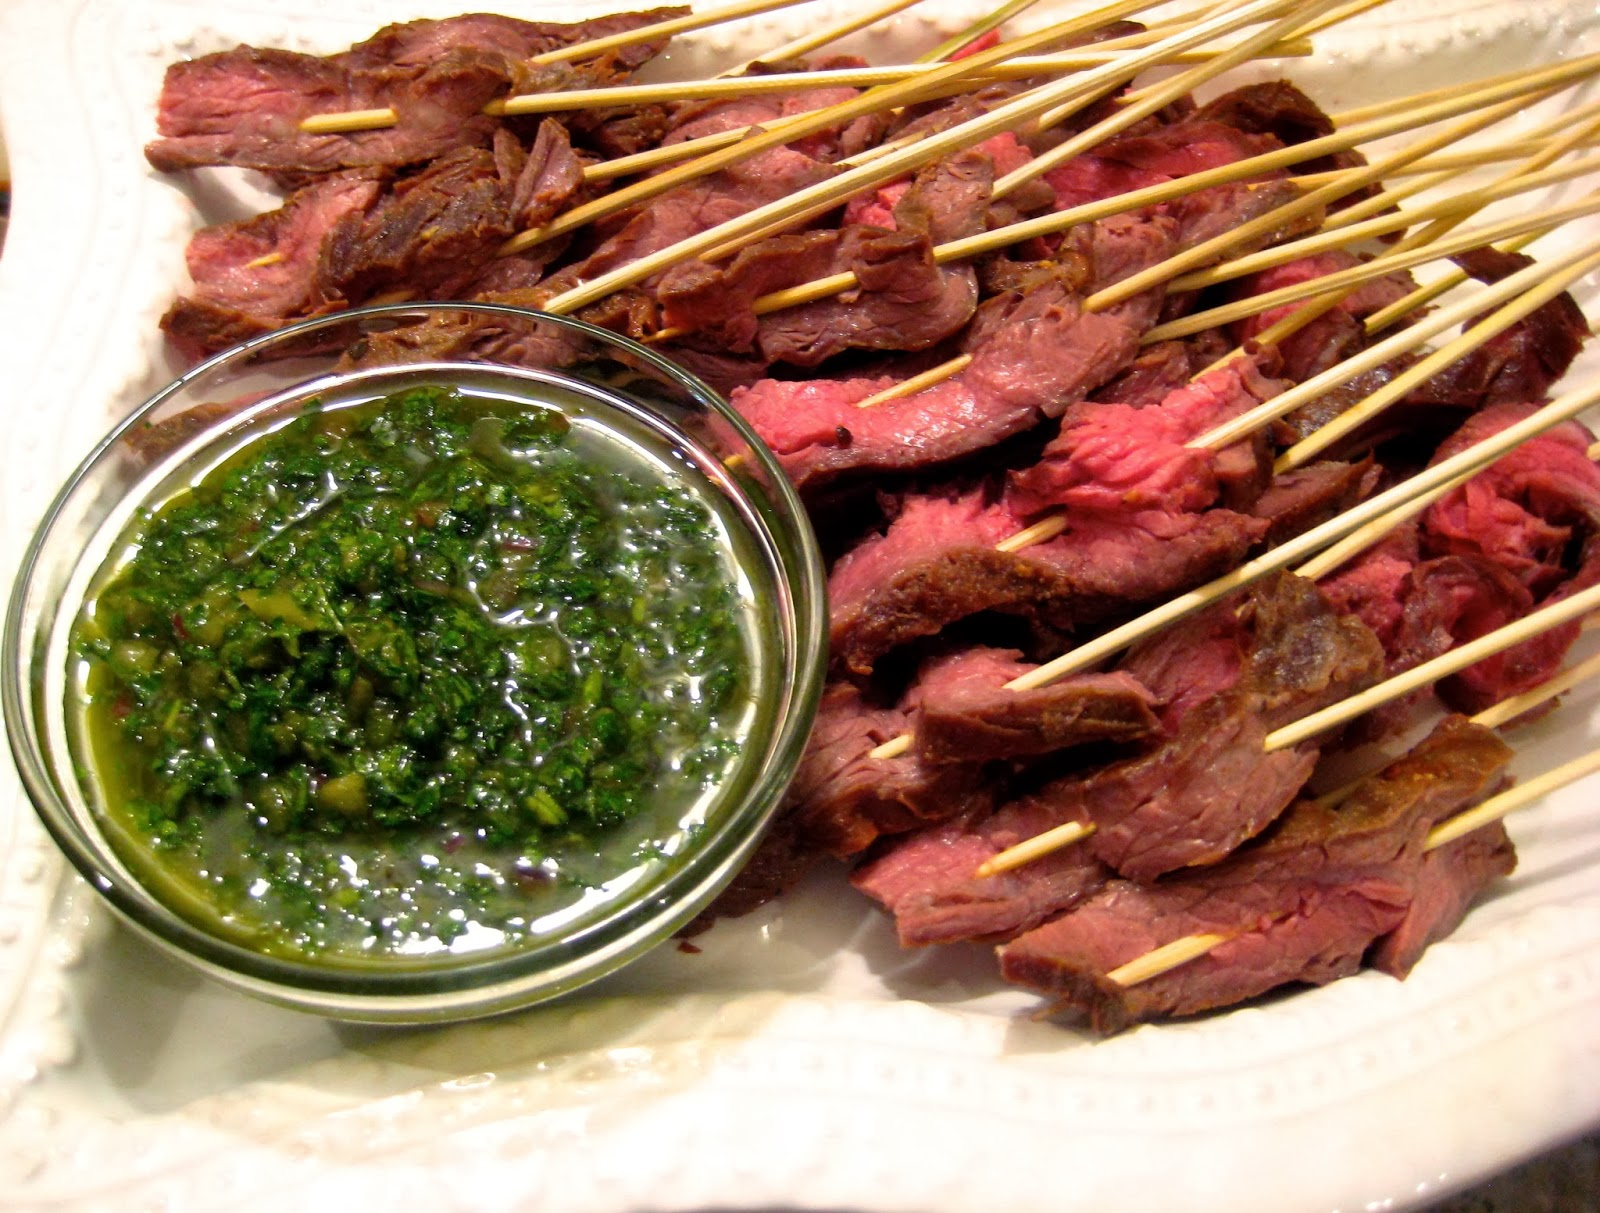 Jackson and Laguna: Flank Steak with Chimichurri Sauce